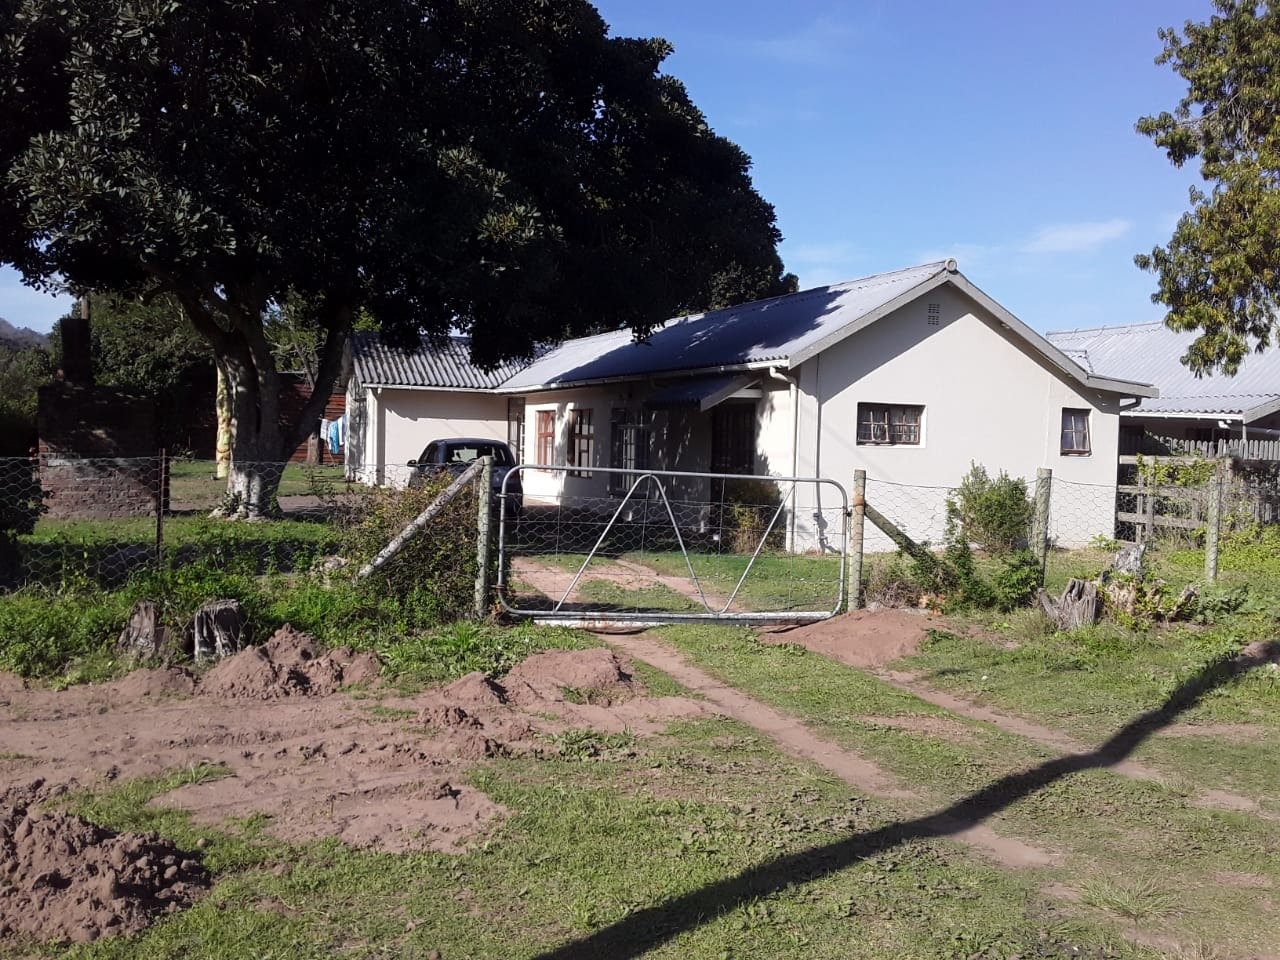 4 Bedroom House For Sale in Sedgefield Central